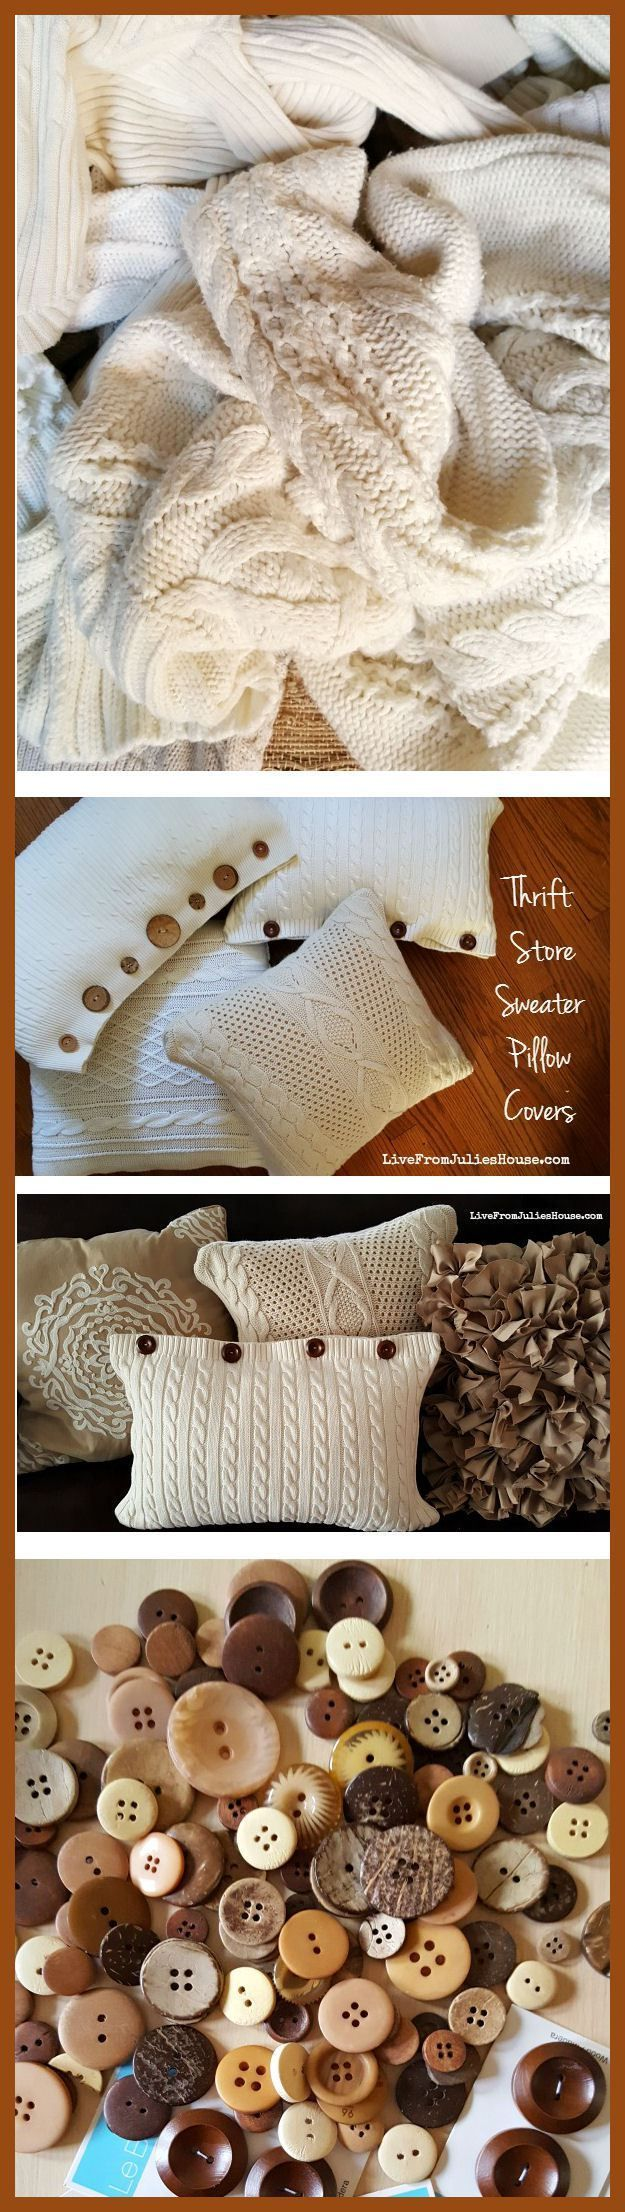 Thrift Store Sweater Pillow Covers - Create cozy pillow covers out of thrift store sweaters with & Best 25+ Pillow covers ideas on Pinterest | Diy pillow covers ... pillowsntoast.com